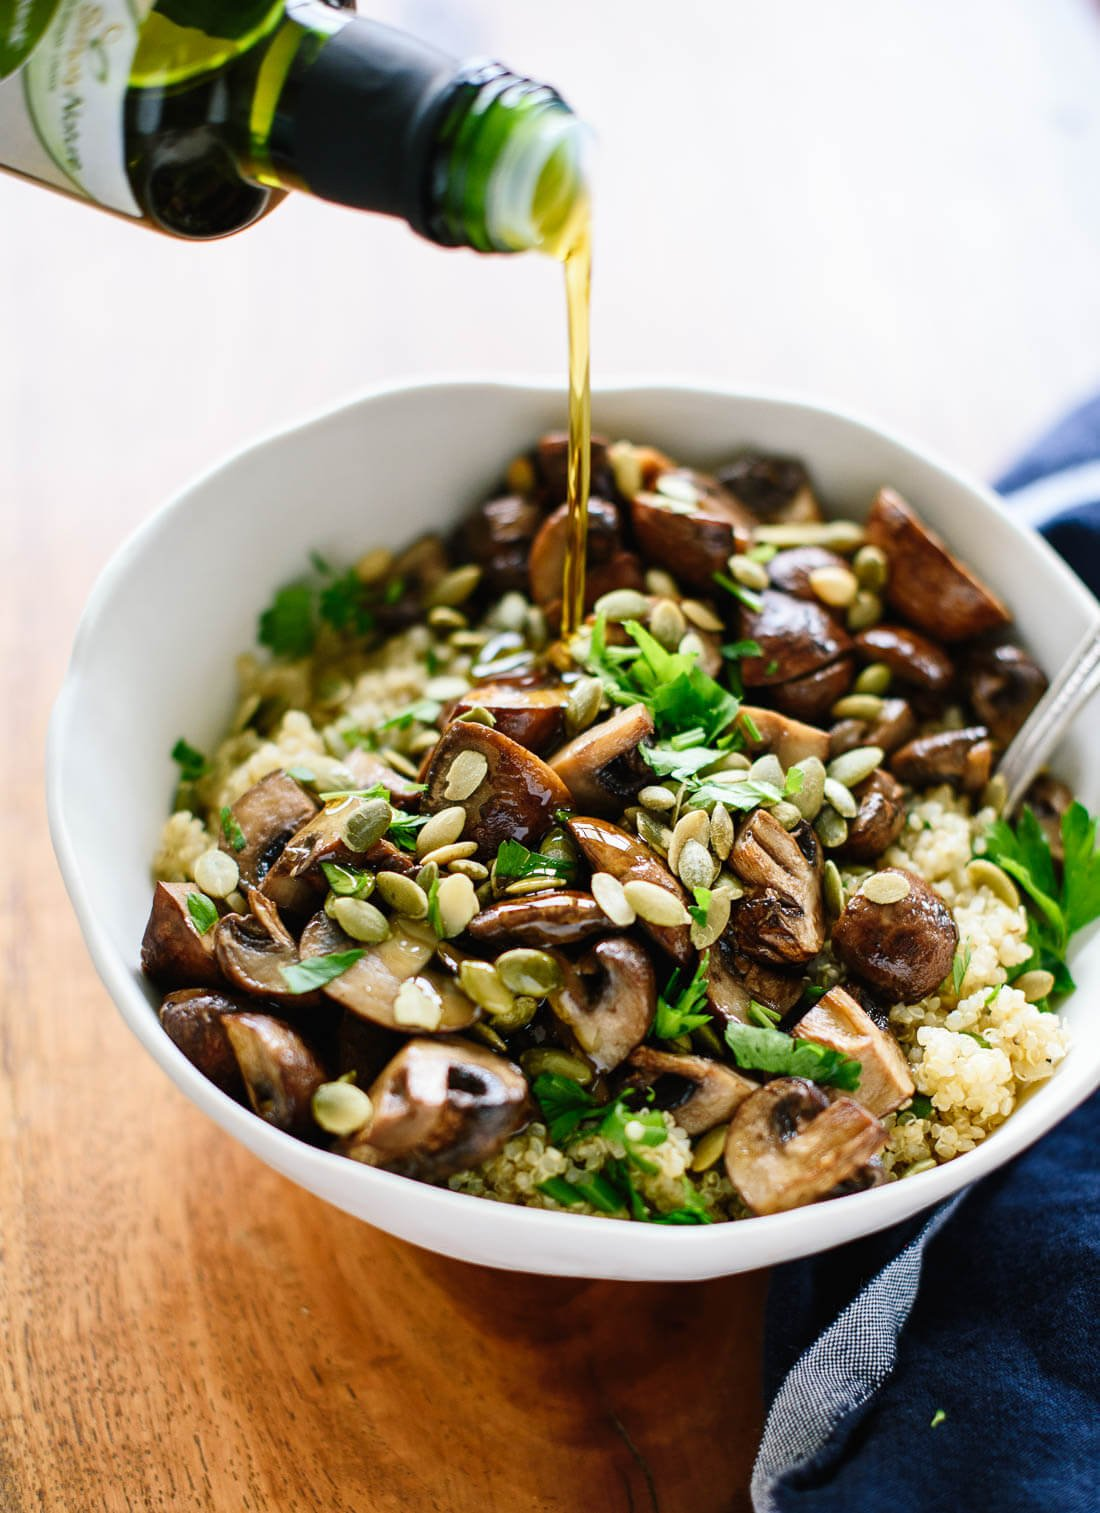 Roasted mushrooms on herbed quinoa with olive oil and pepitas